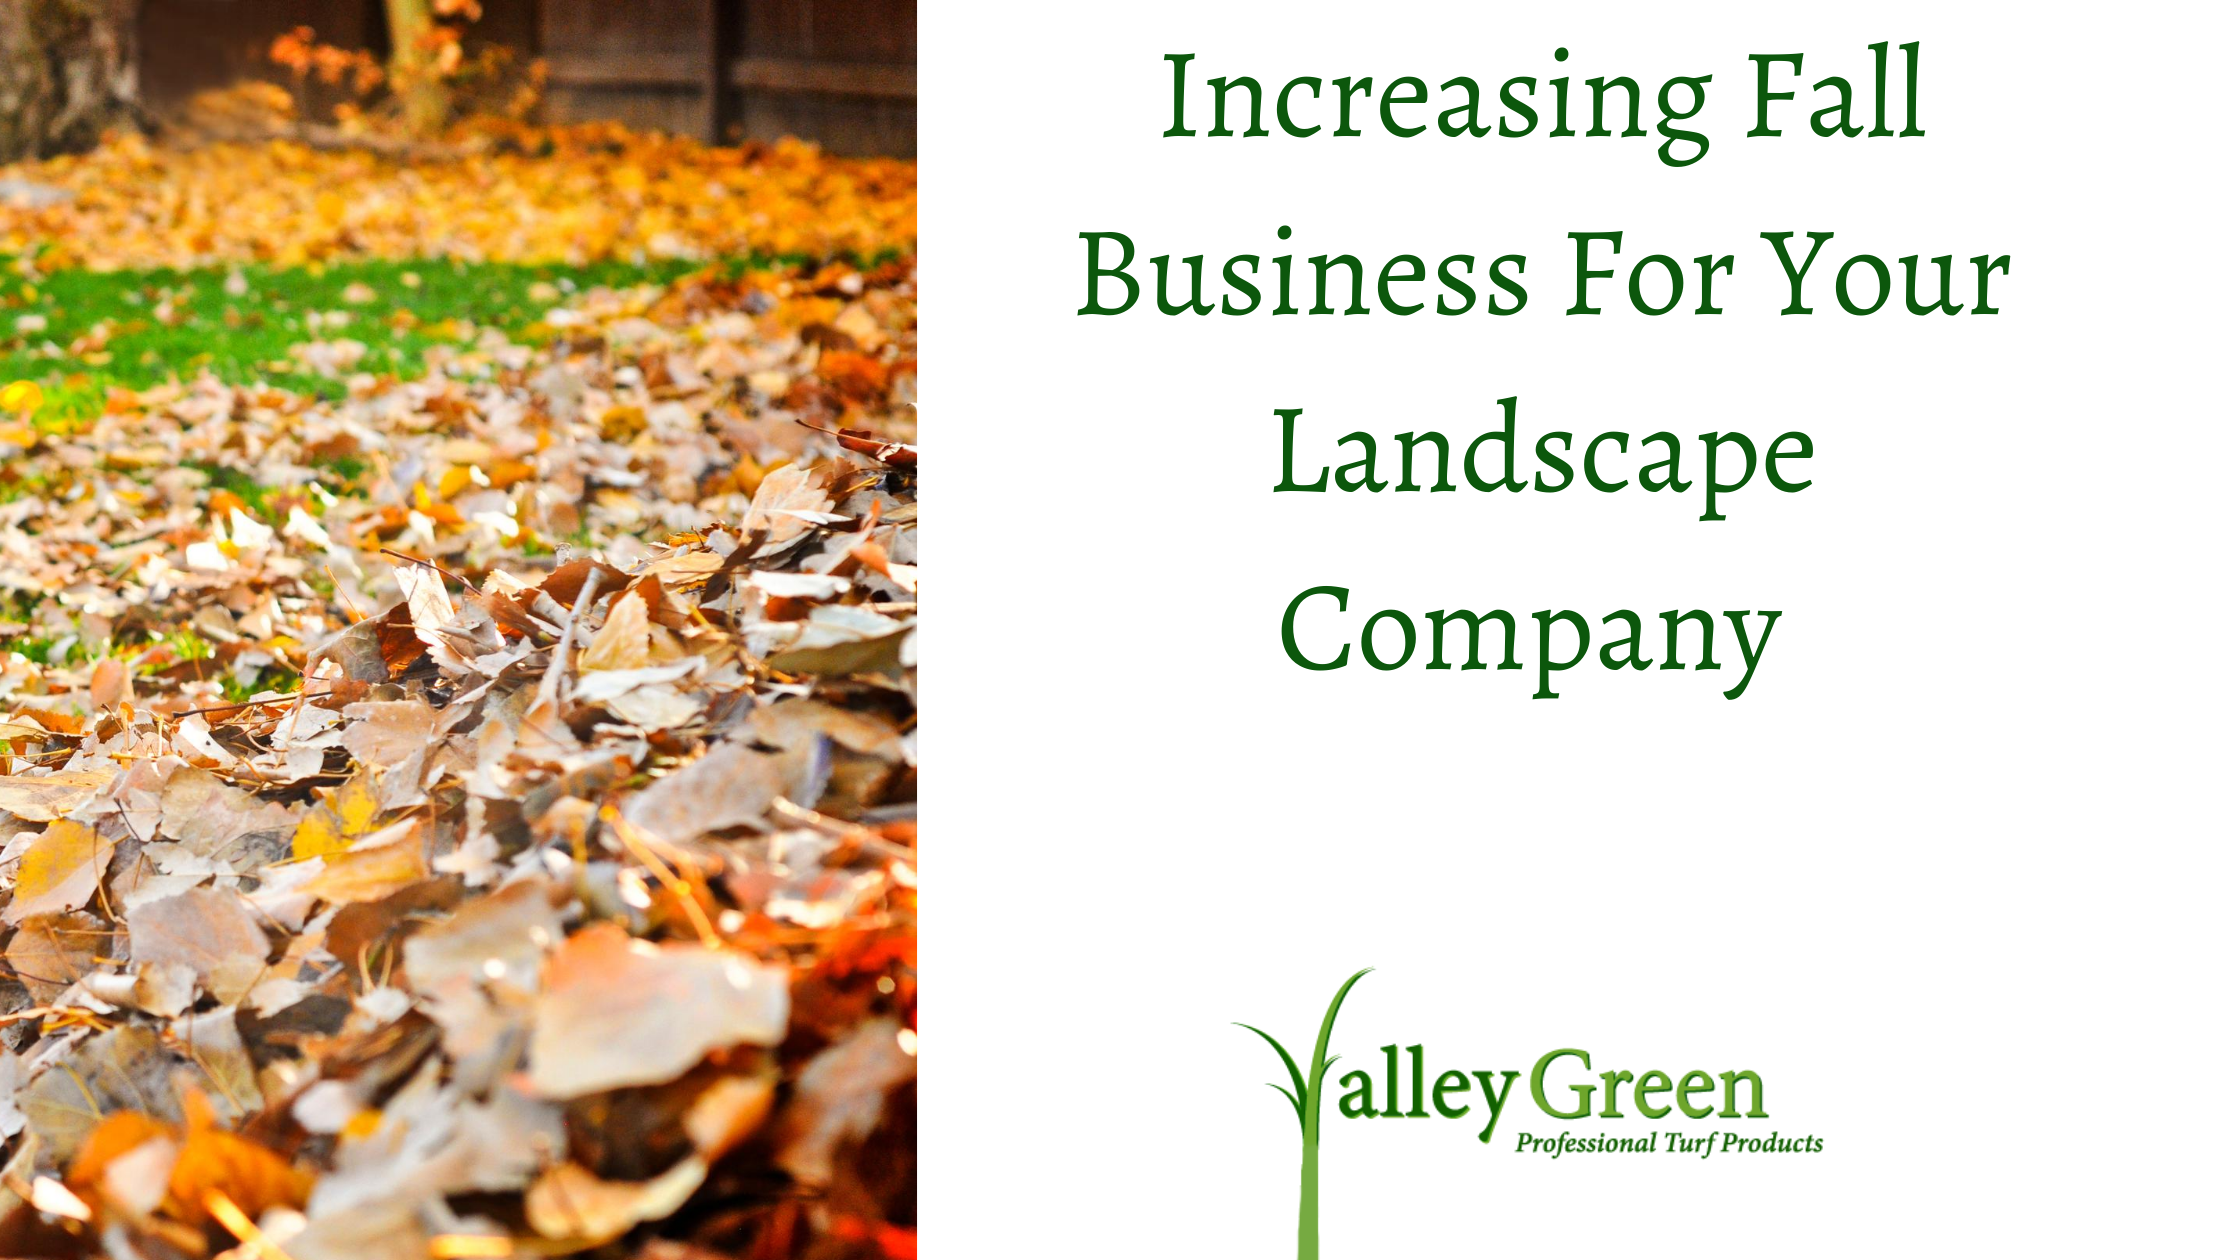 Increasing Fall Business For Your Landscape Company